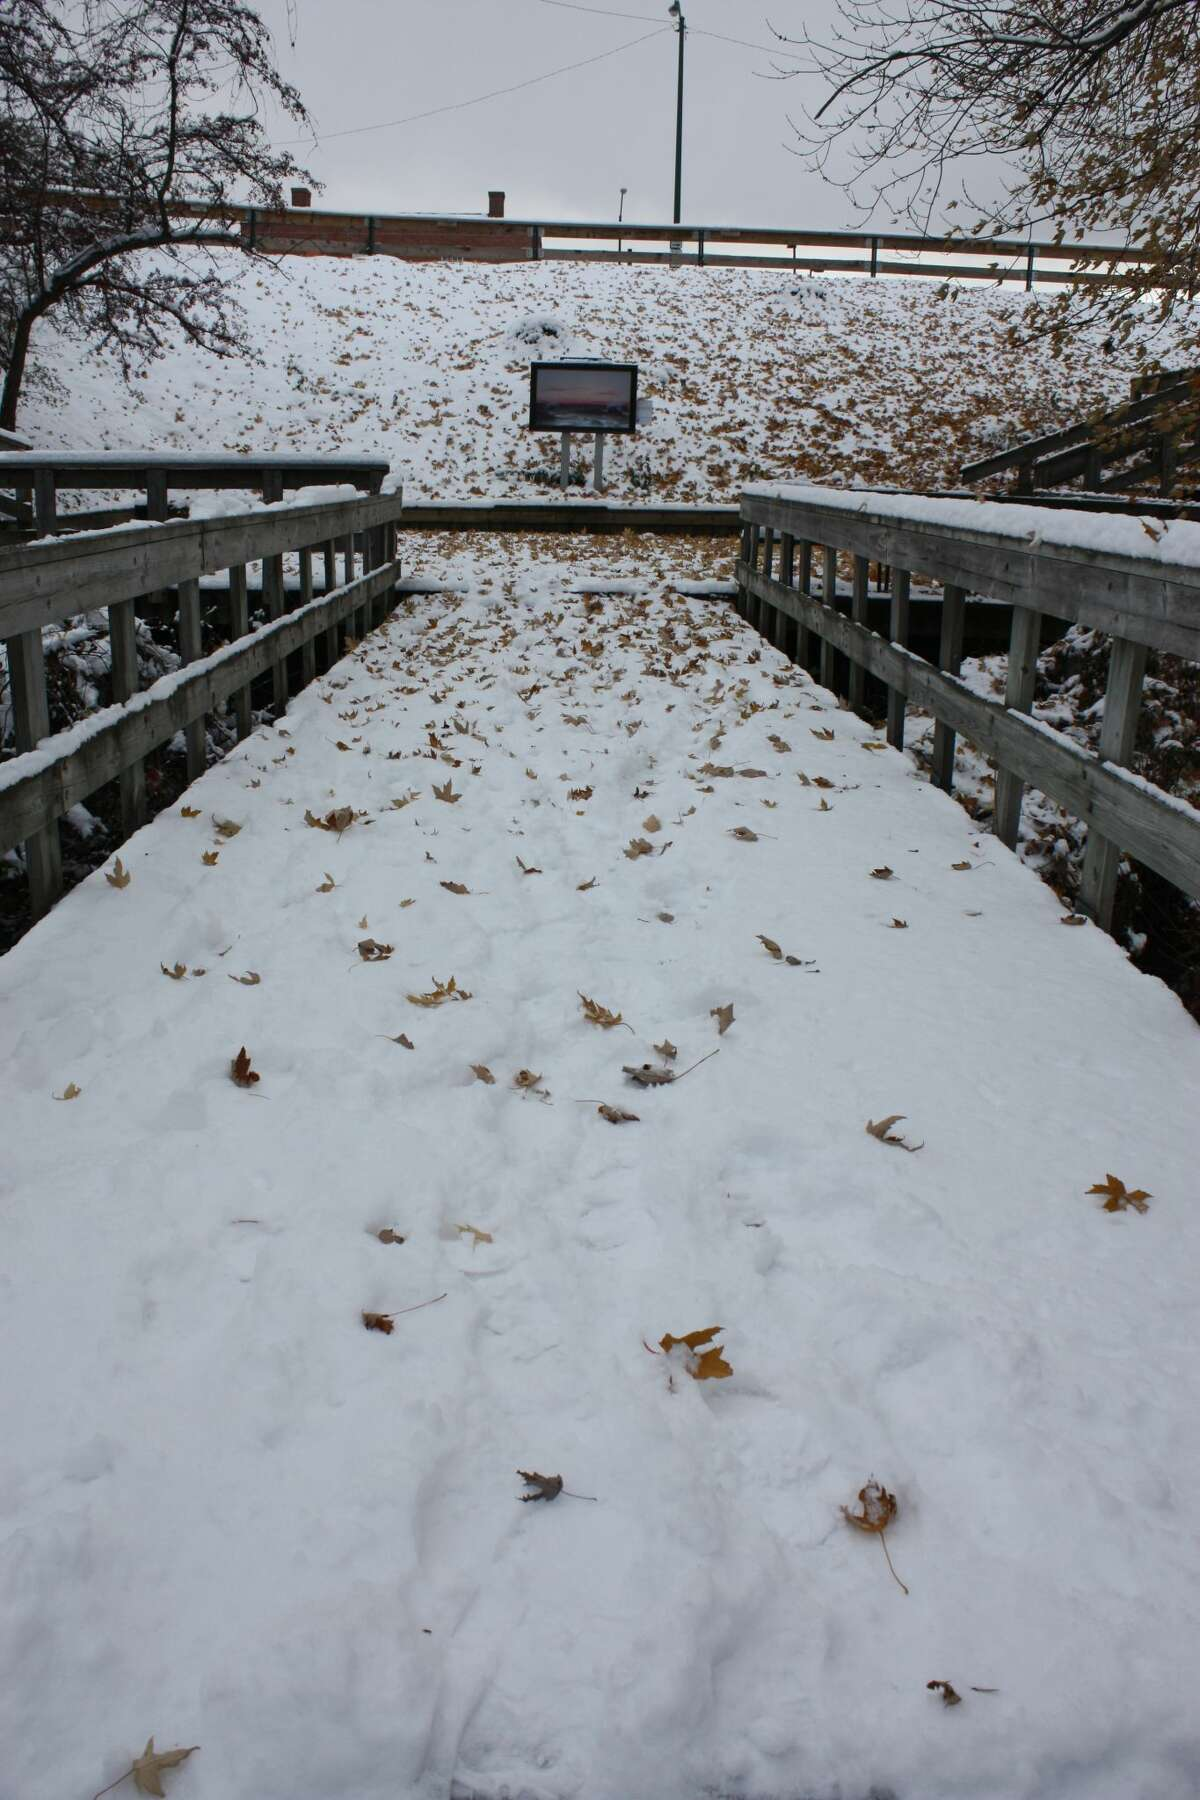 A snowstorm in the Big Rapids on Wednesday left the area looking like what some may consider a